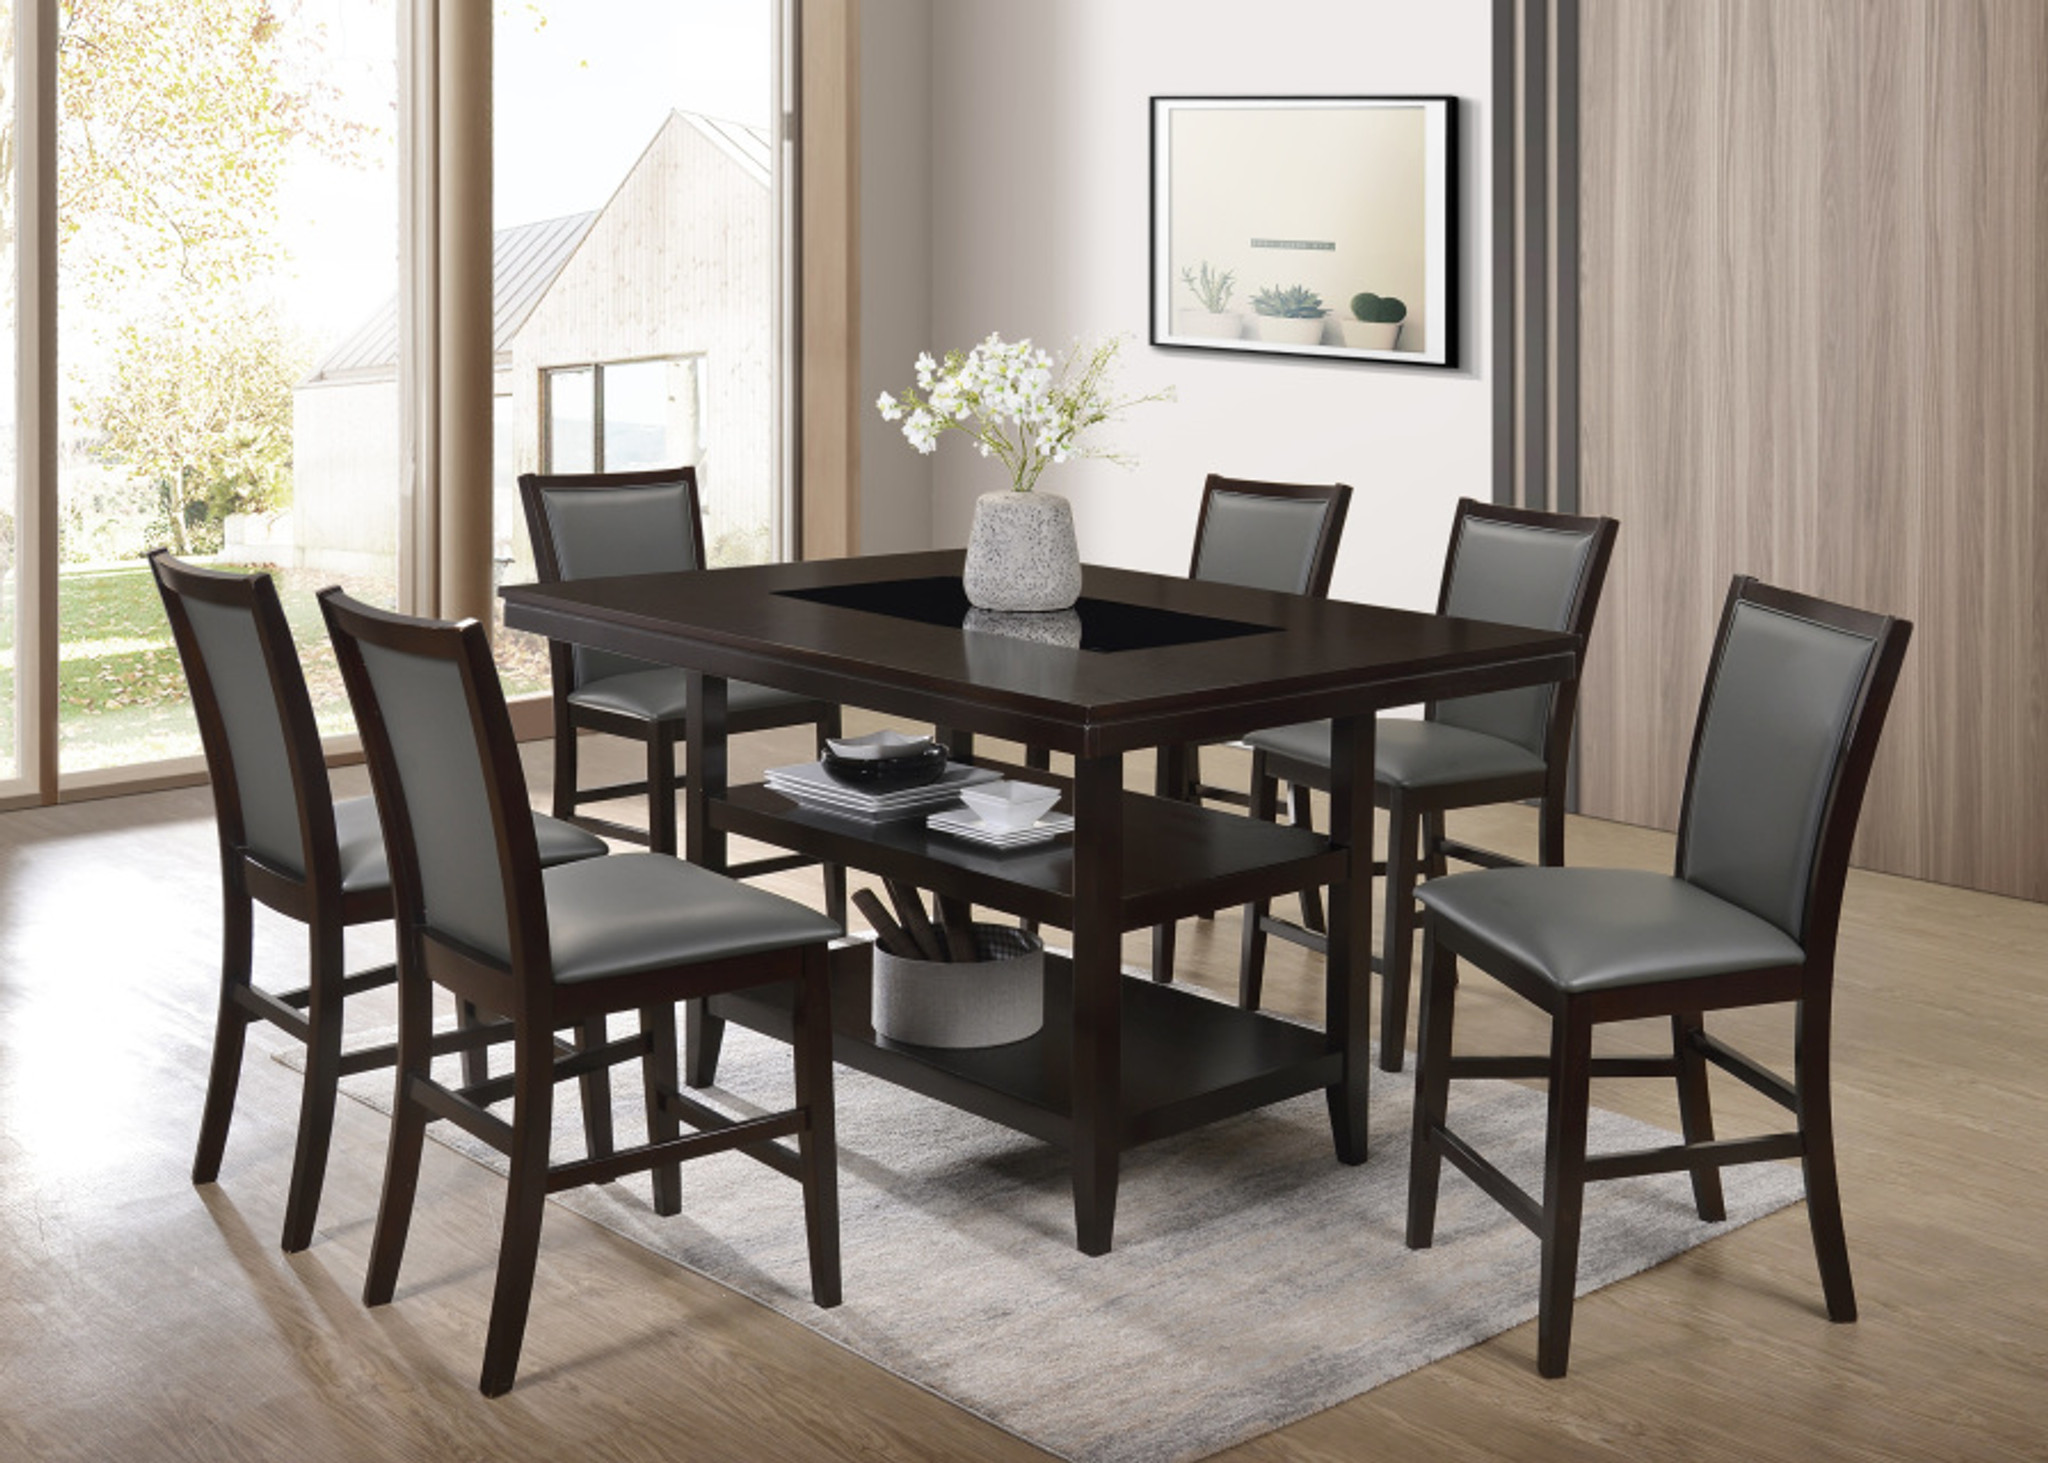 Picture of: Condor Condor Counter Height Dining Table 7 Pcs Set Collection By Happy Homes